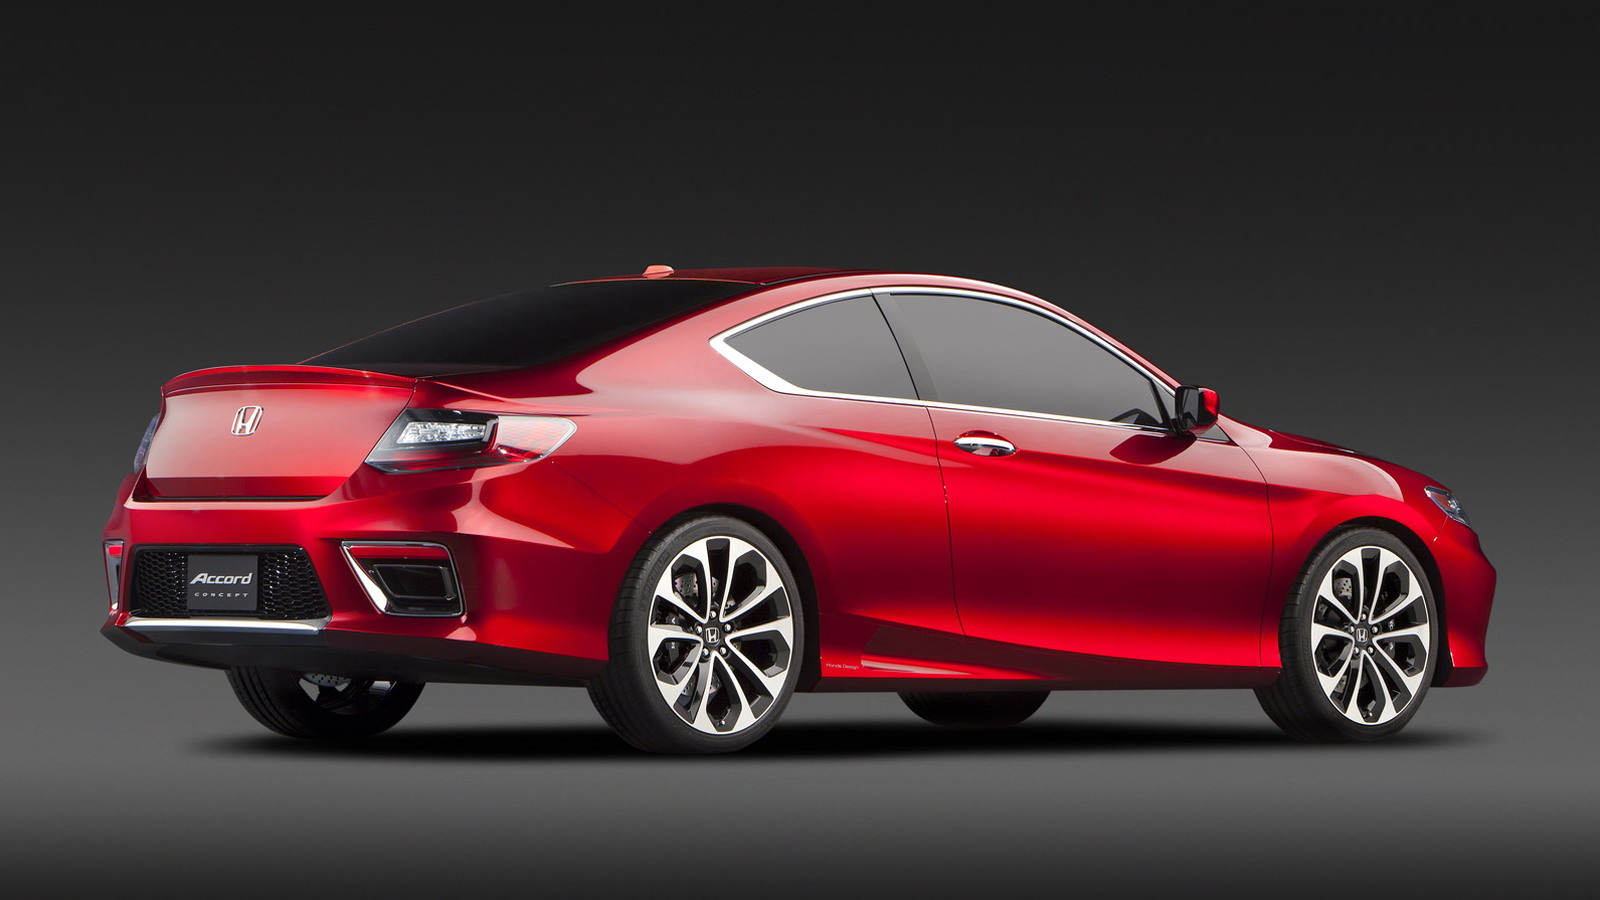 2013 Honda Accord Coupe Concept